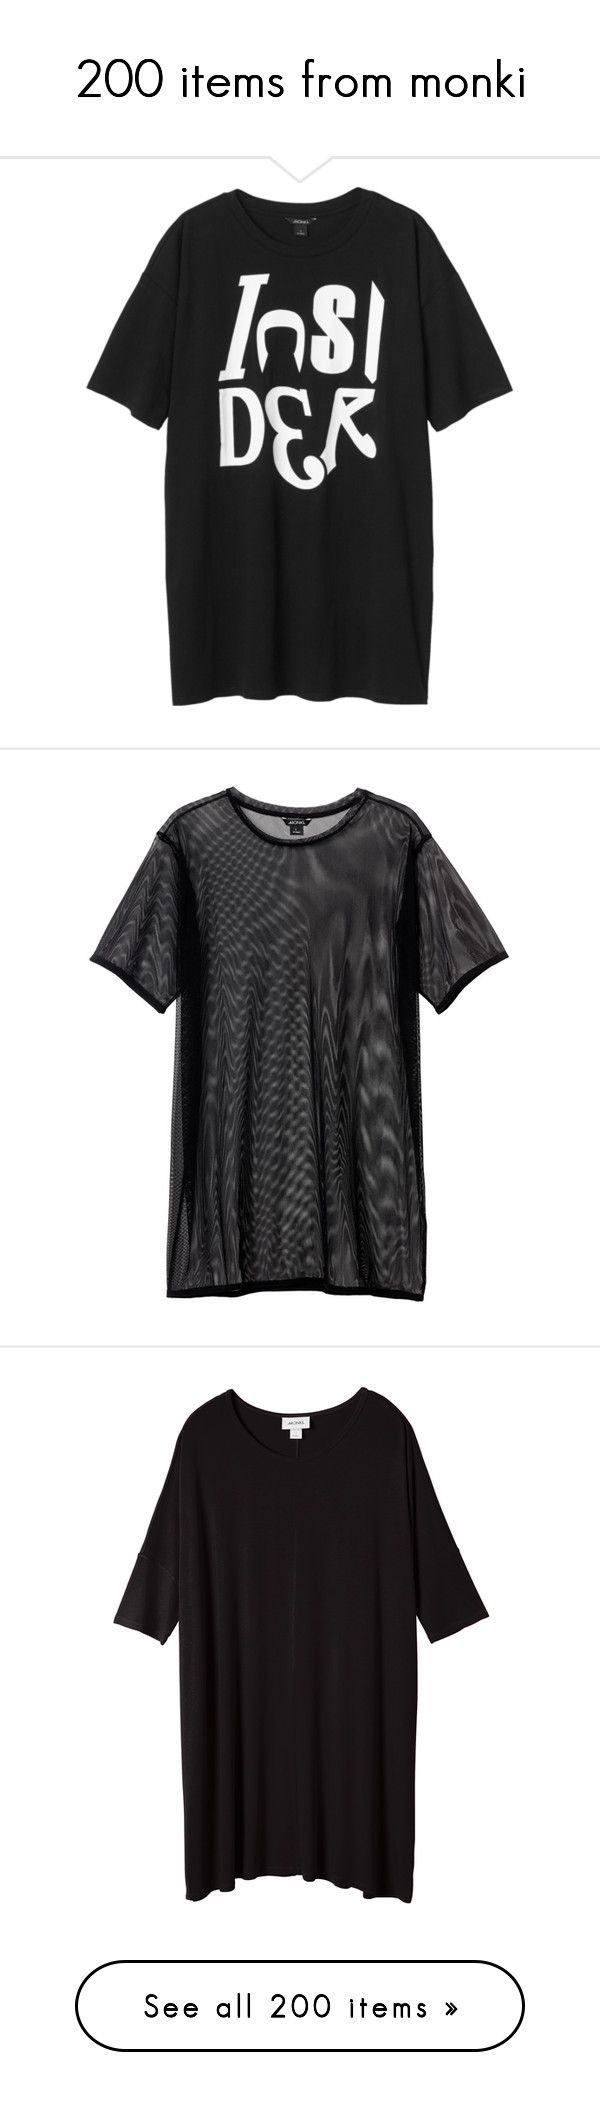 """""""200 items from monki"""" by f-4bulous ❤ liked on Polyvore featuring dresses, tops, shirts, clothes - dress, spirited statements, monki, sports dresses, sport dresses, t-shirts and black magic"""